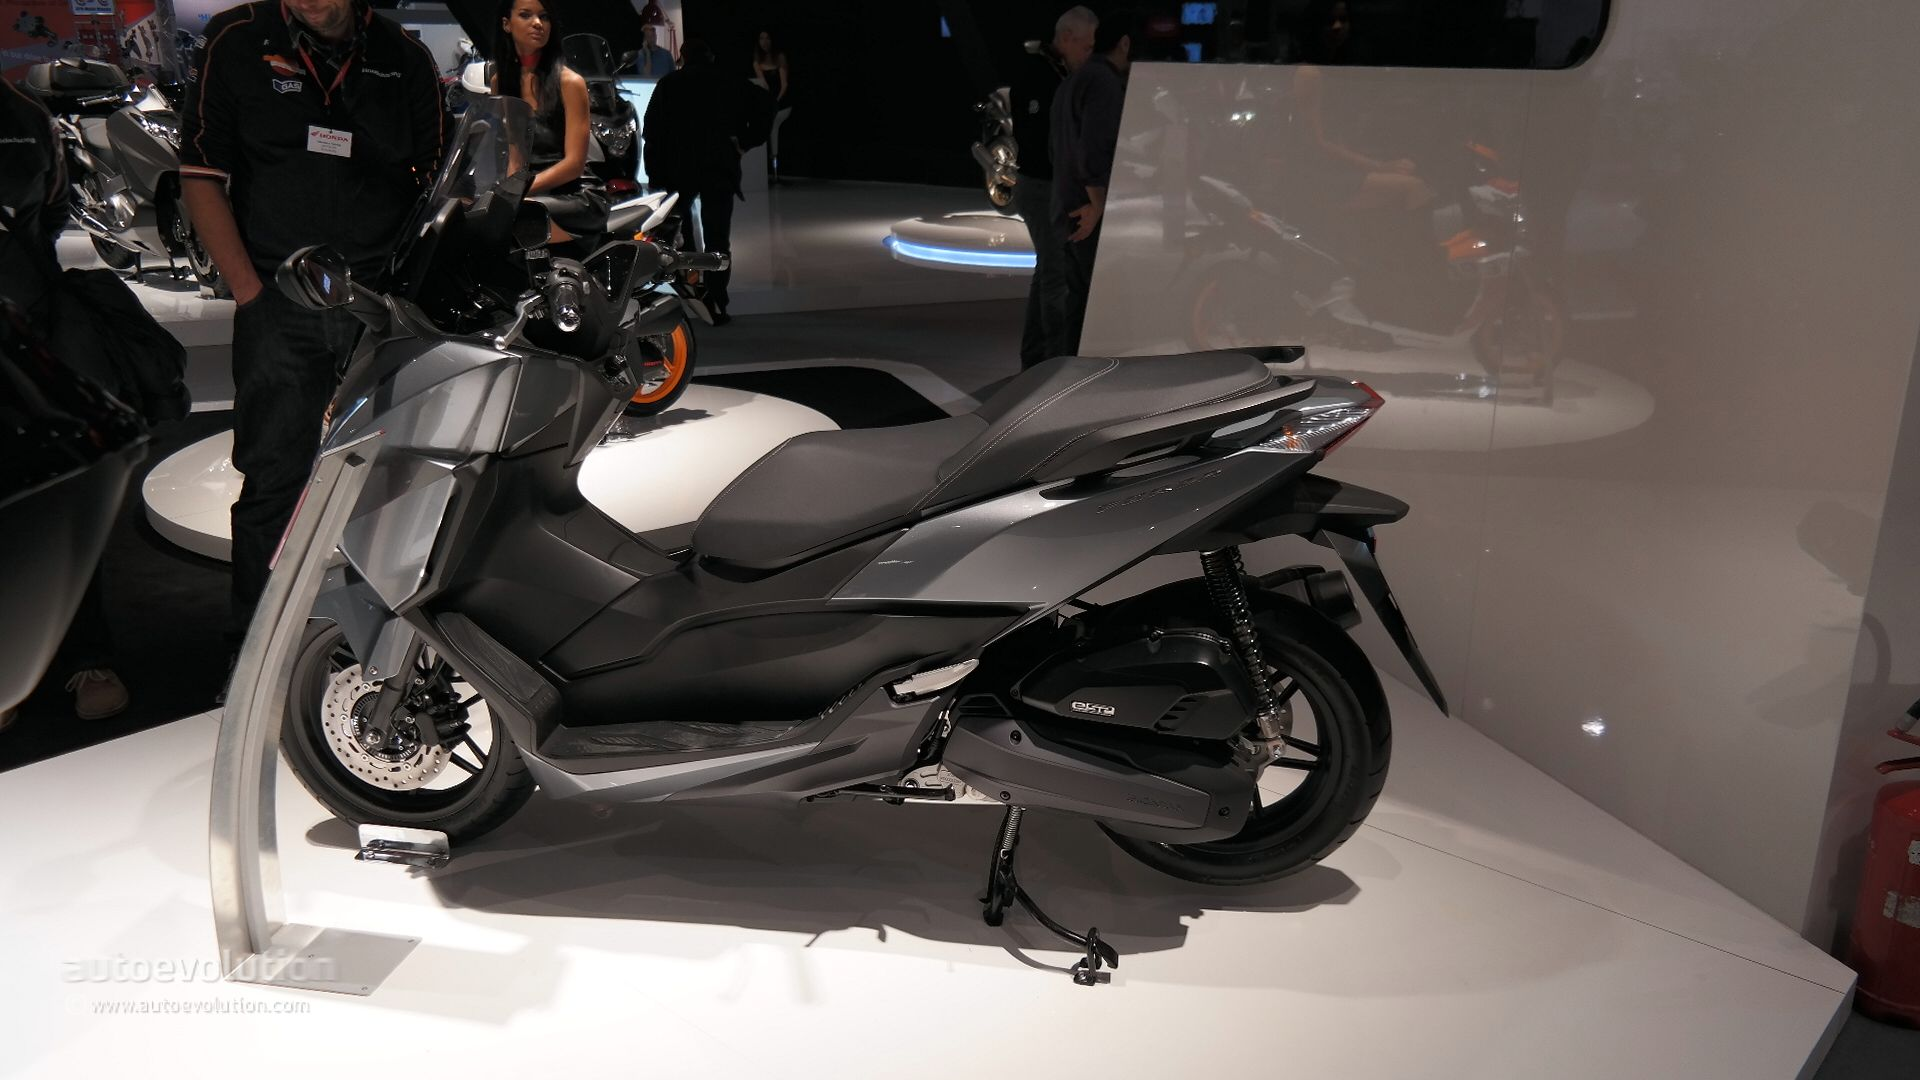 2015 honda forza 125 shows fresh led lights at eicma 2014. Black Bedroom Furniture Sets. Home Design Ideas